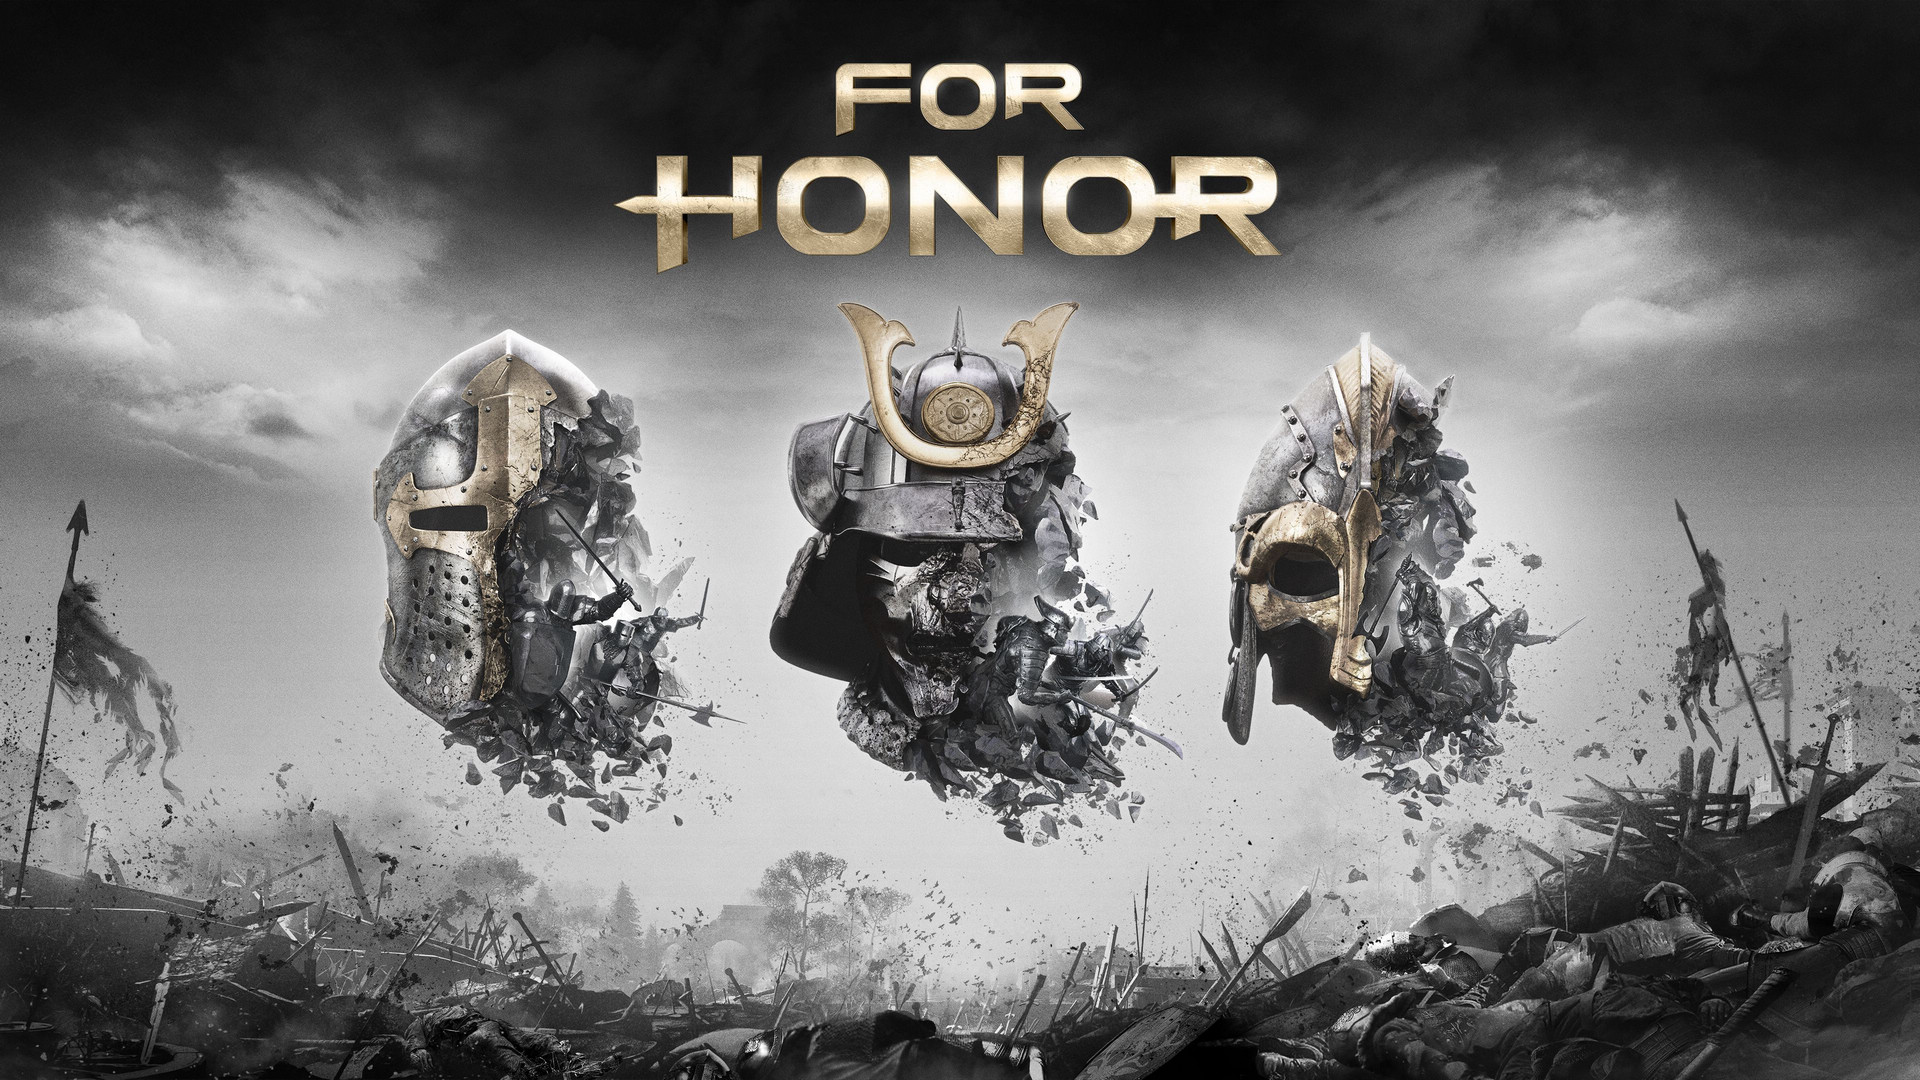 育碧新作《For Honor》图集